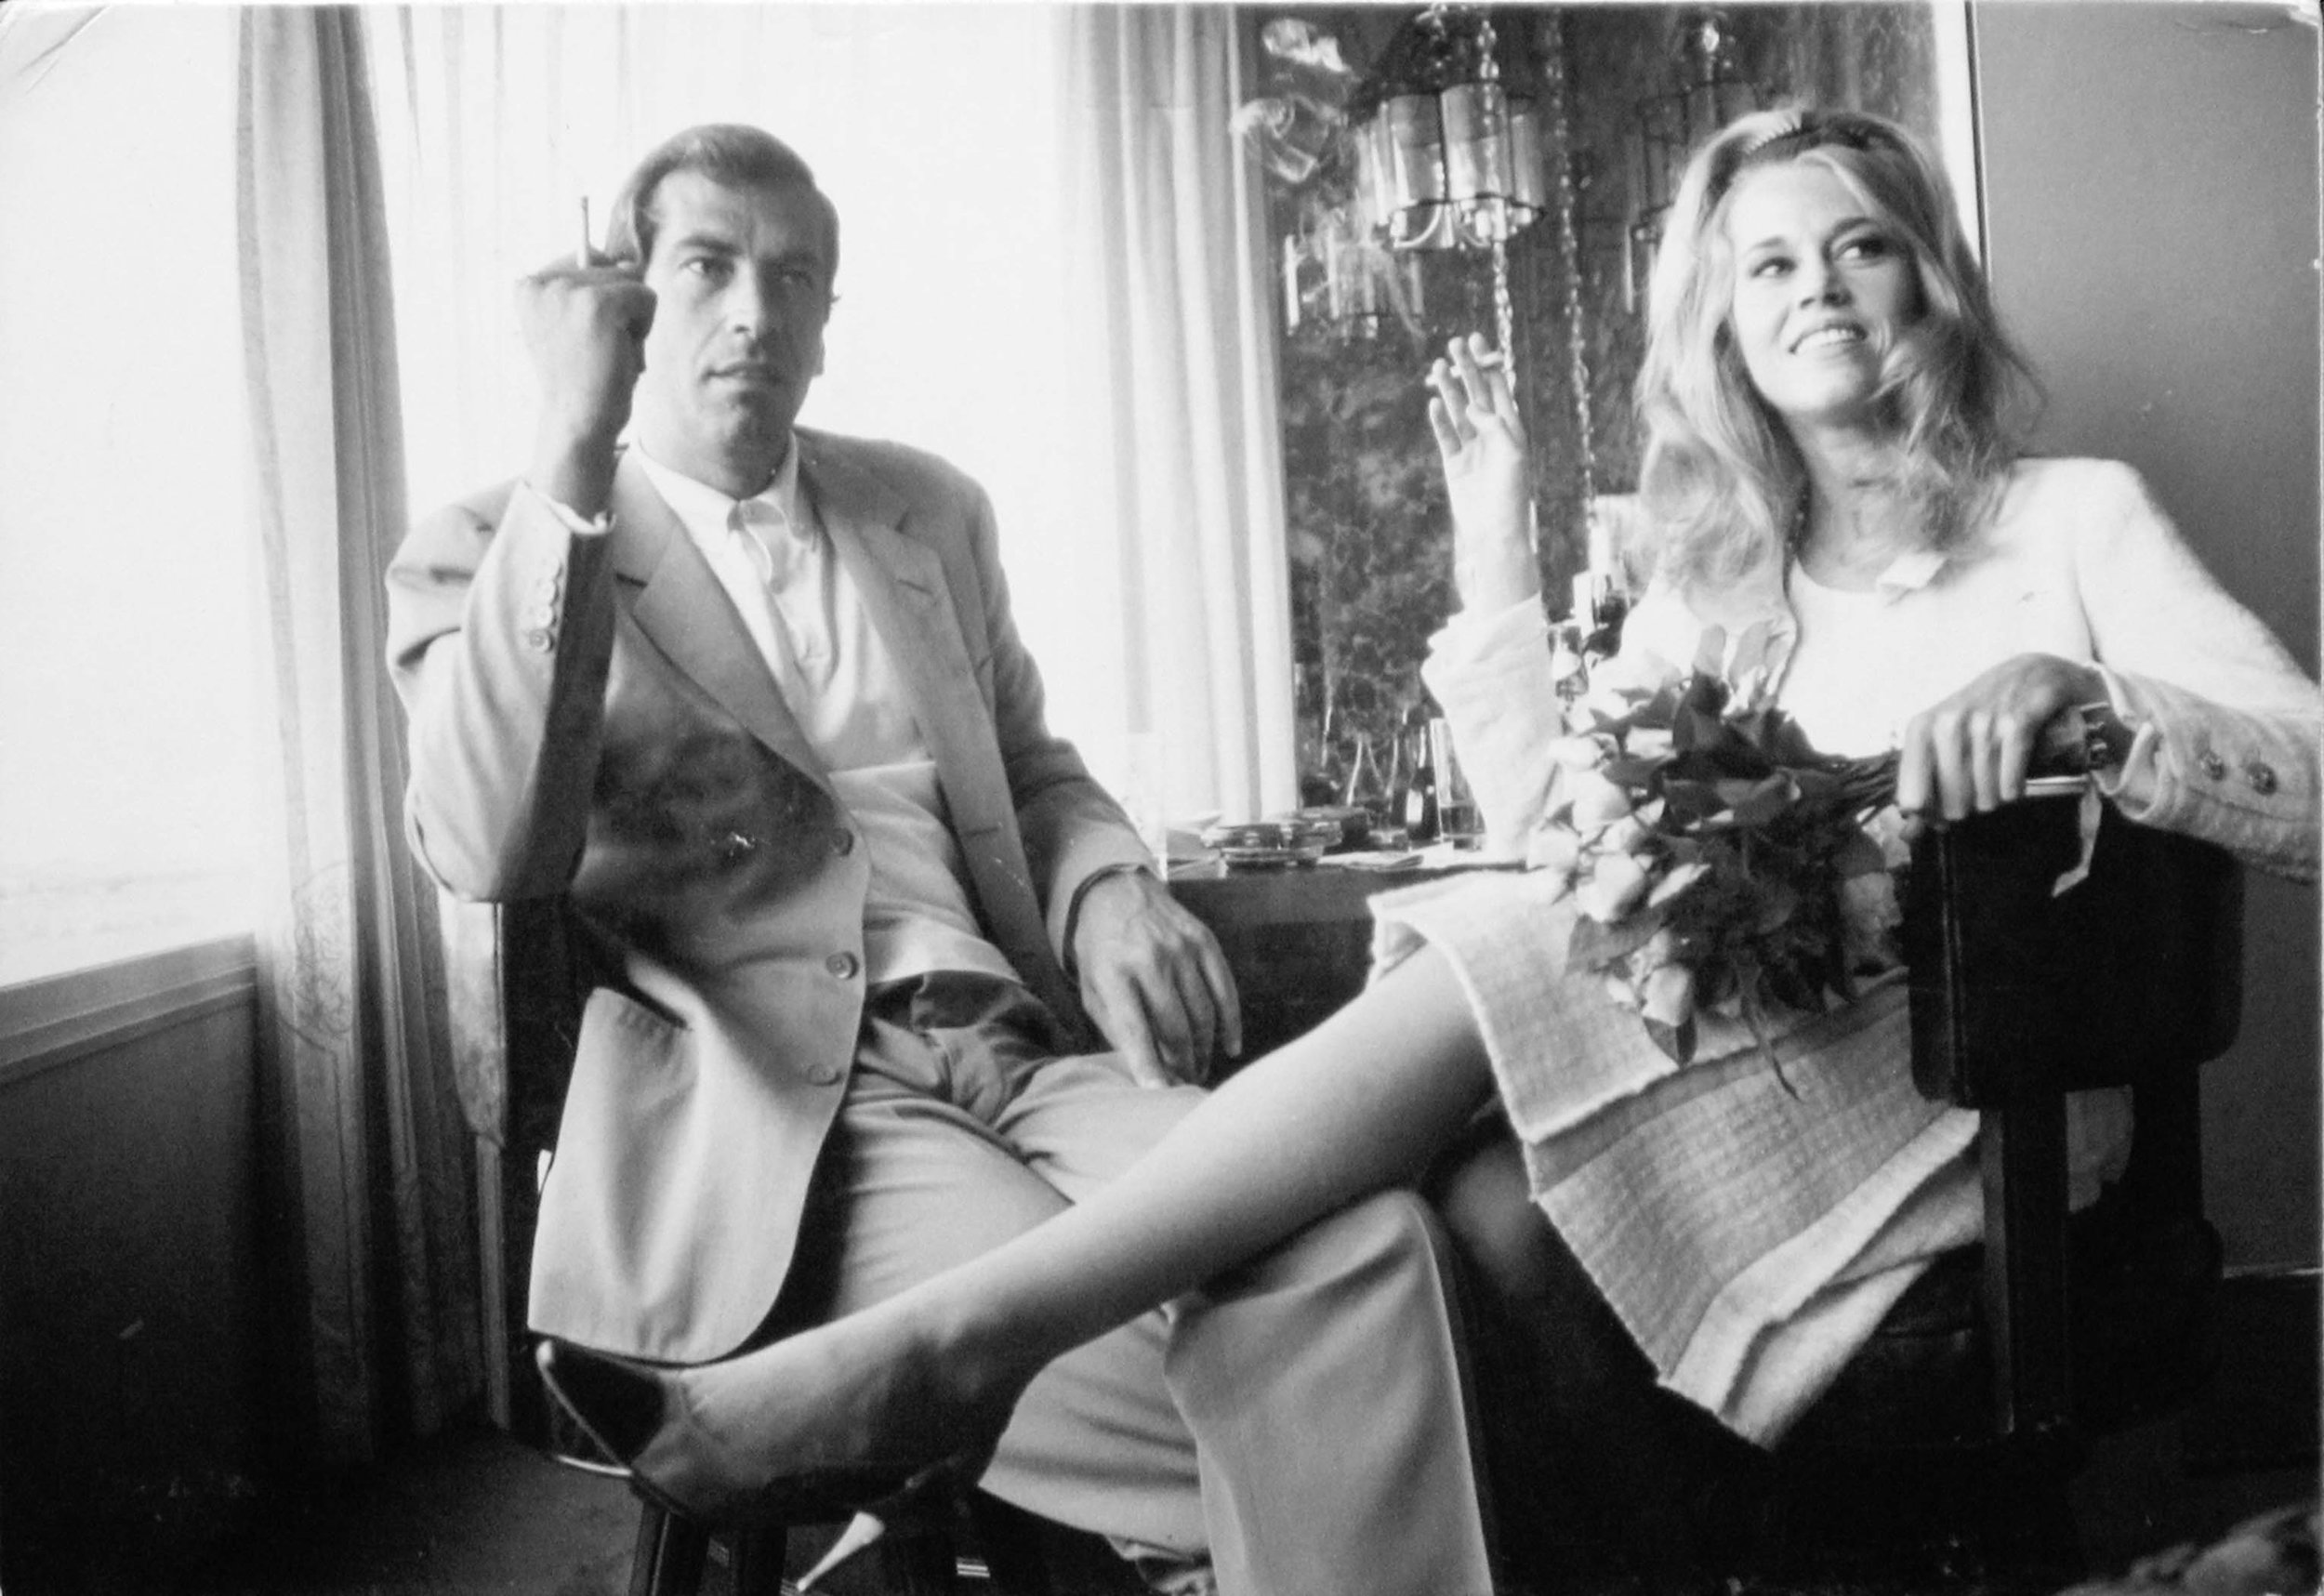 Jane Fonda and Roger Vadim at ther wedding in Las Vegas, 1965, Photo by Dennis Hopper